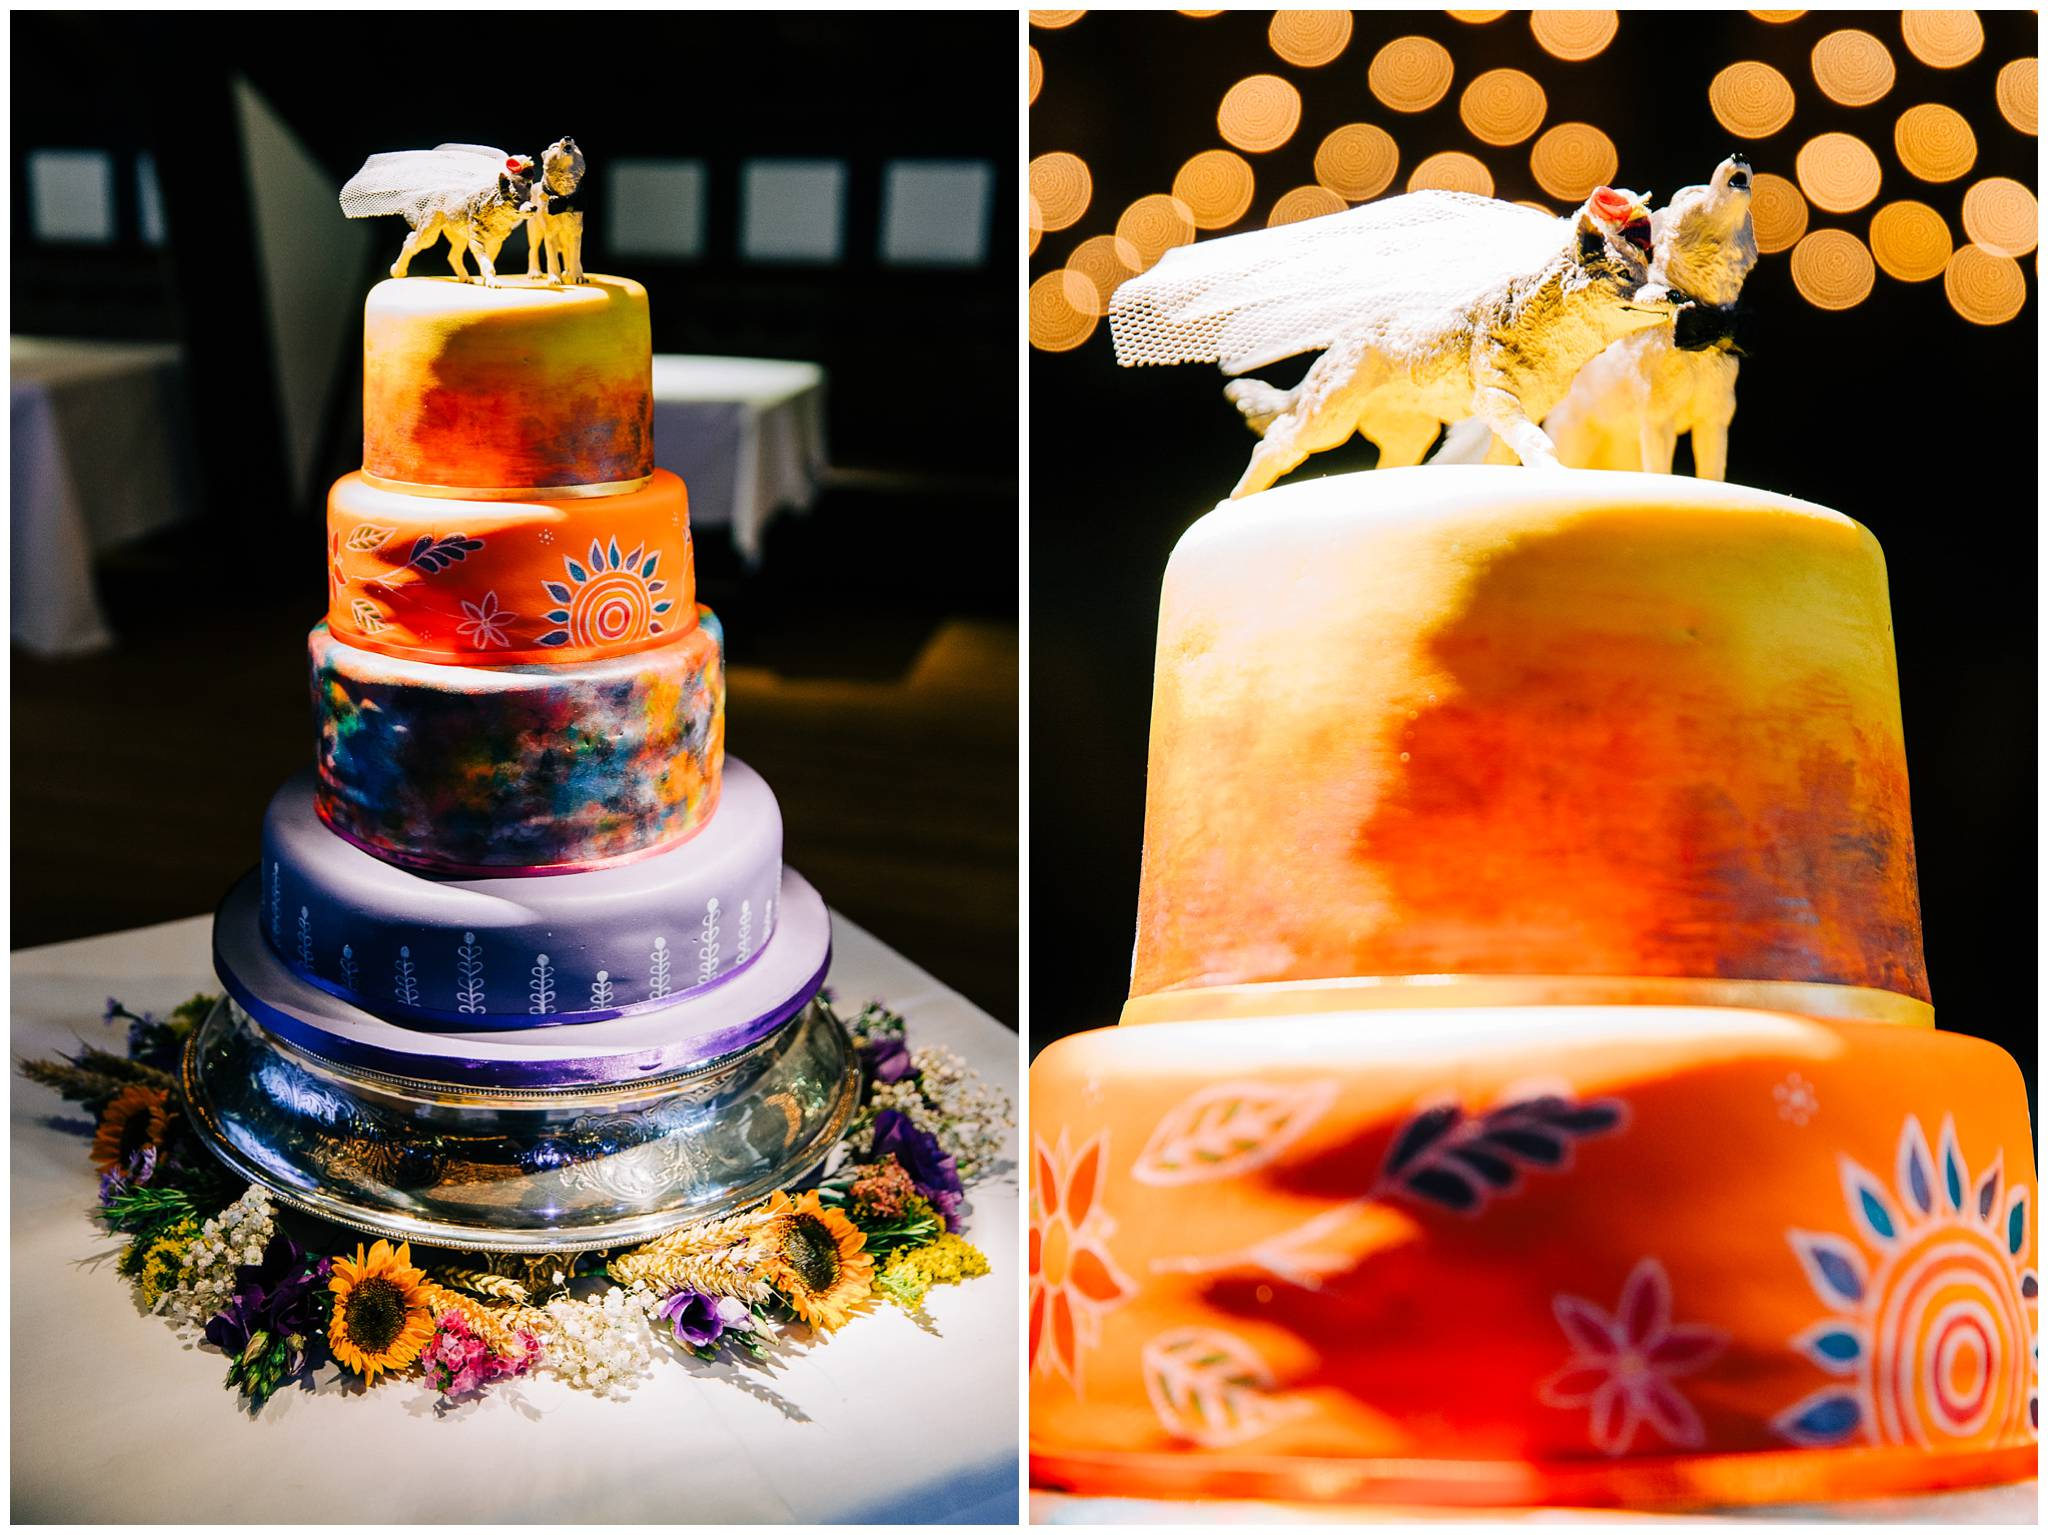 handpainted 4 tier wedding cake with wolves topper